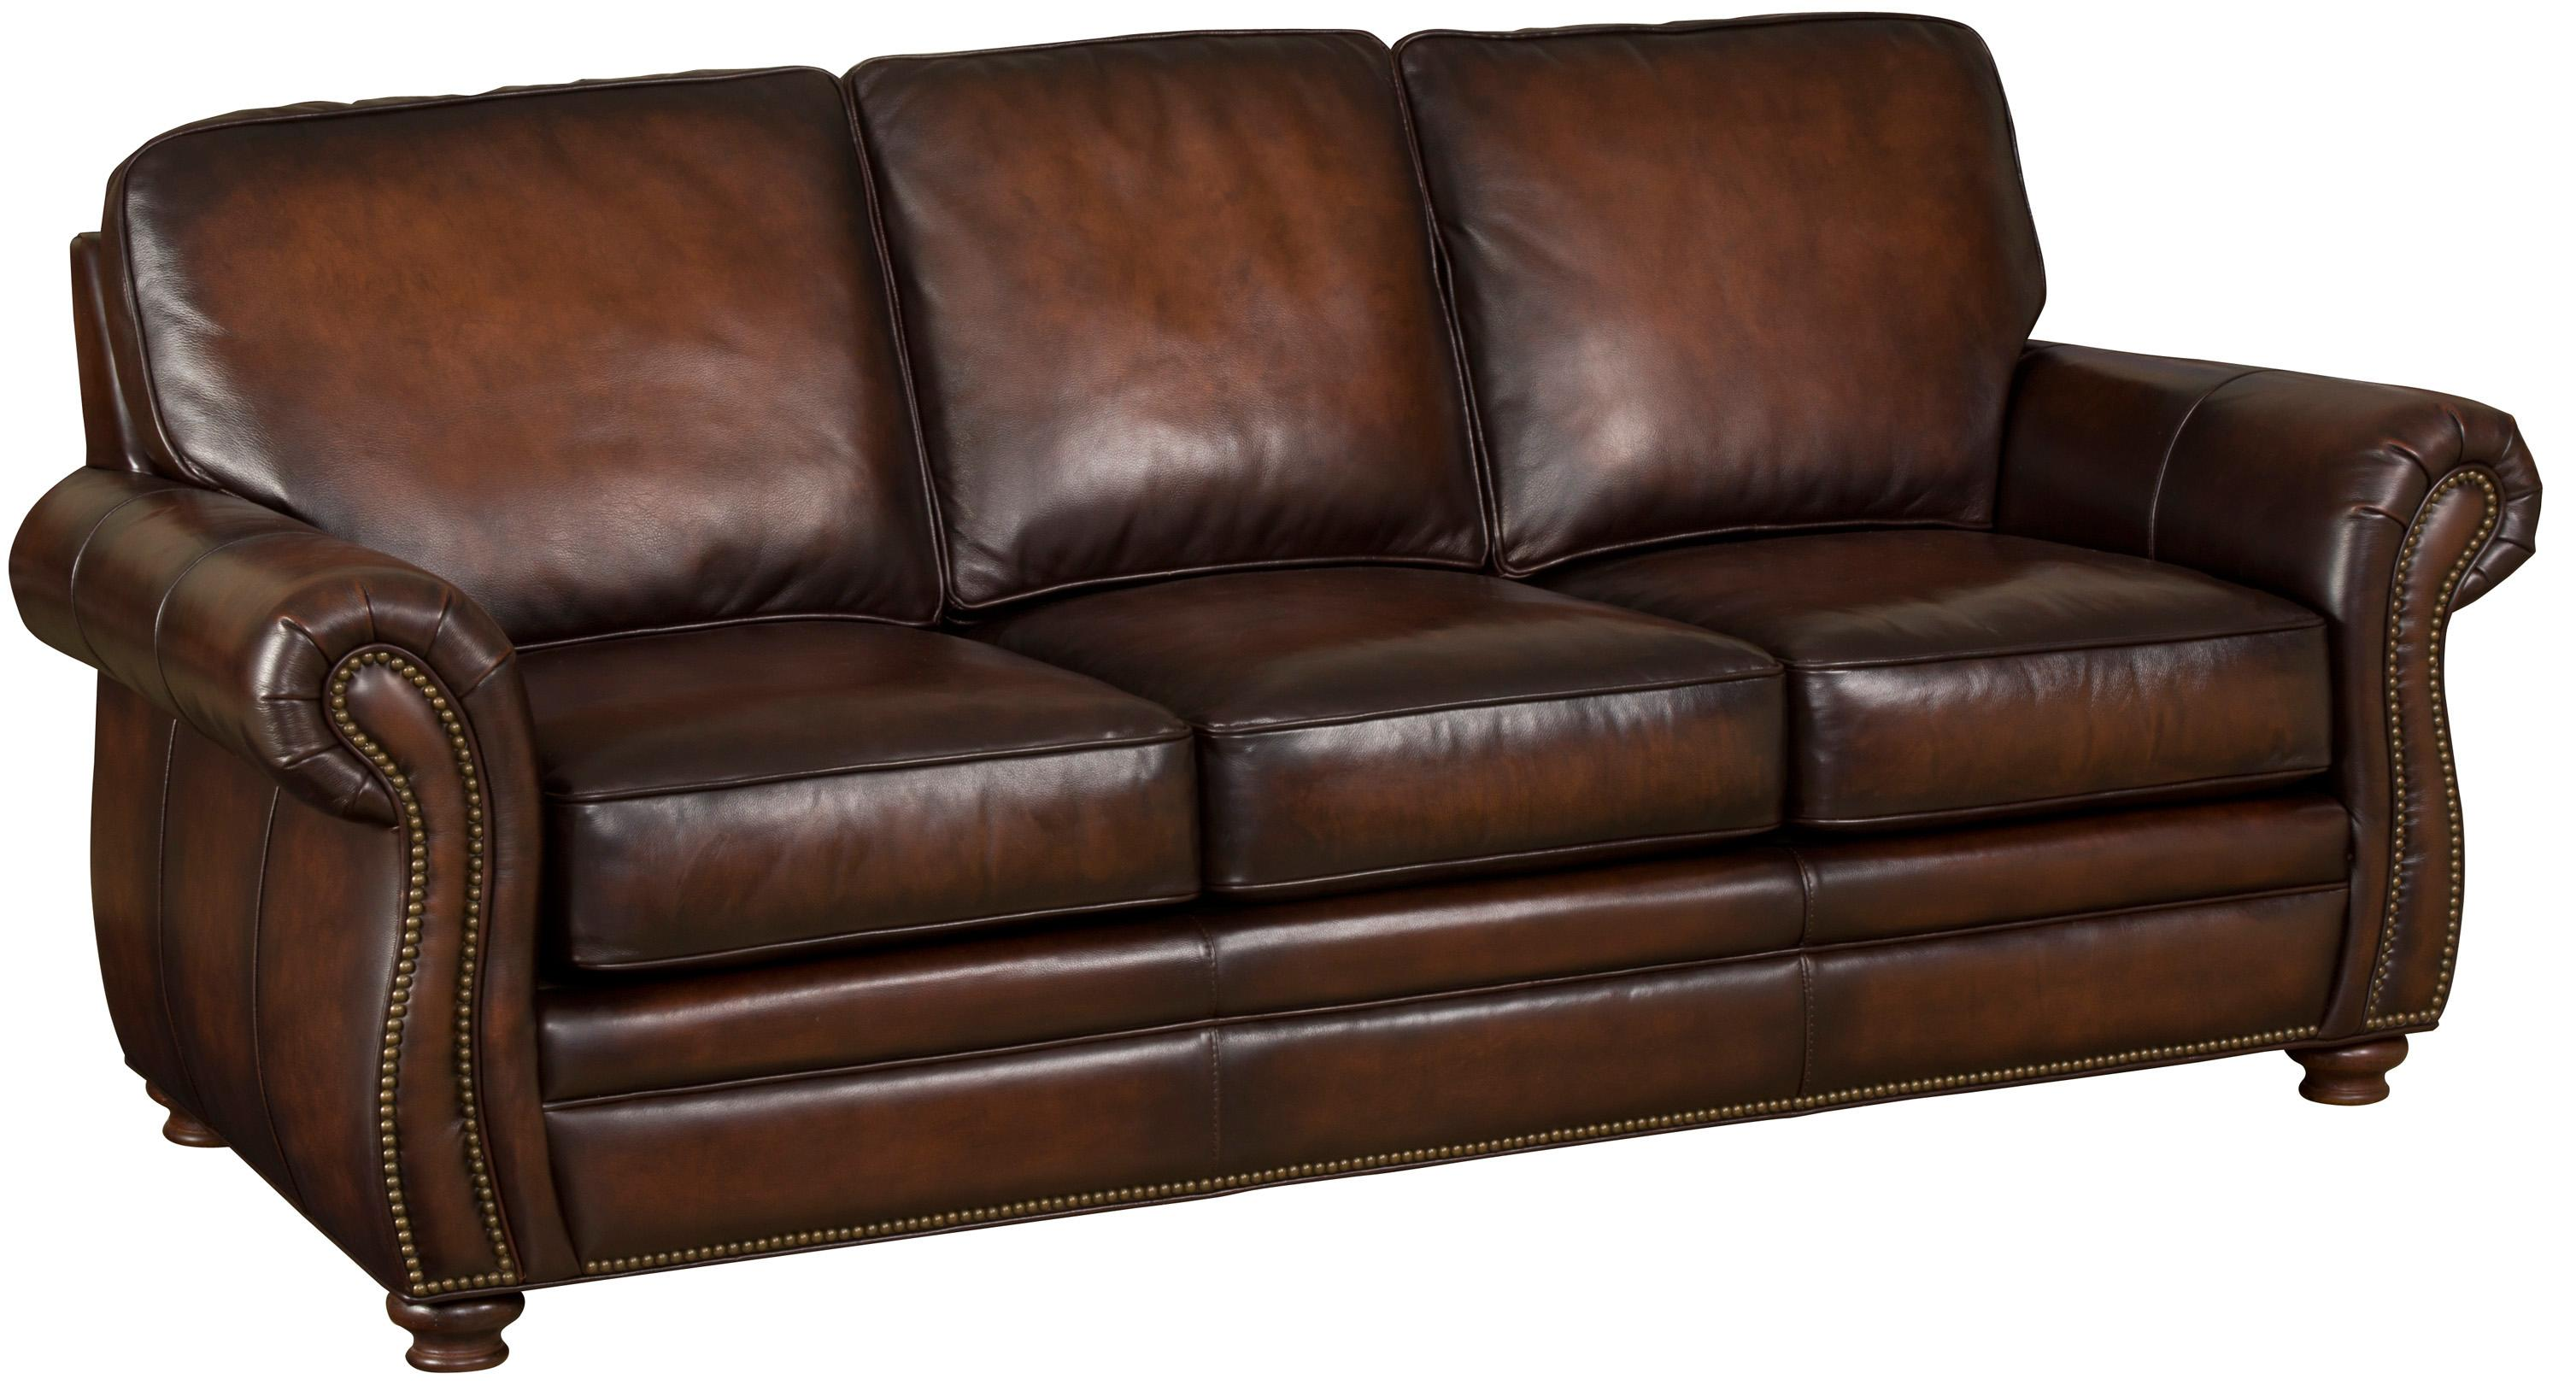 hooker furniture ss186 brown leather sofa with exposed. Black Bedroom Furniture Sets. Home Design Ideas